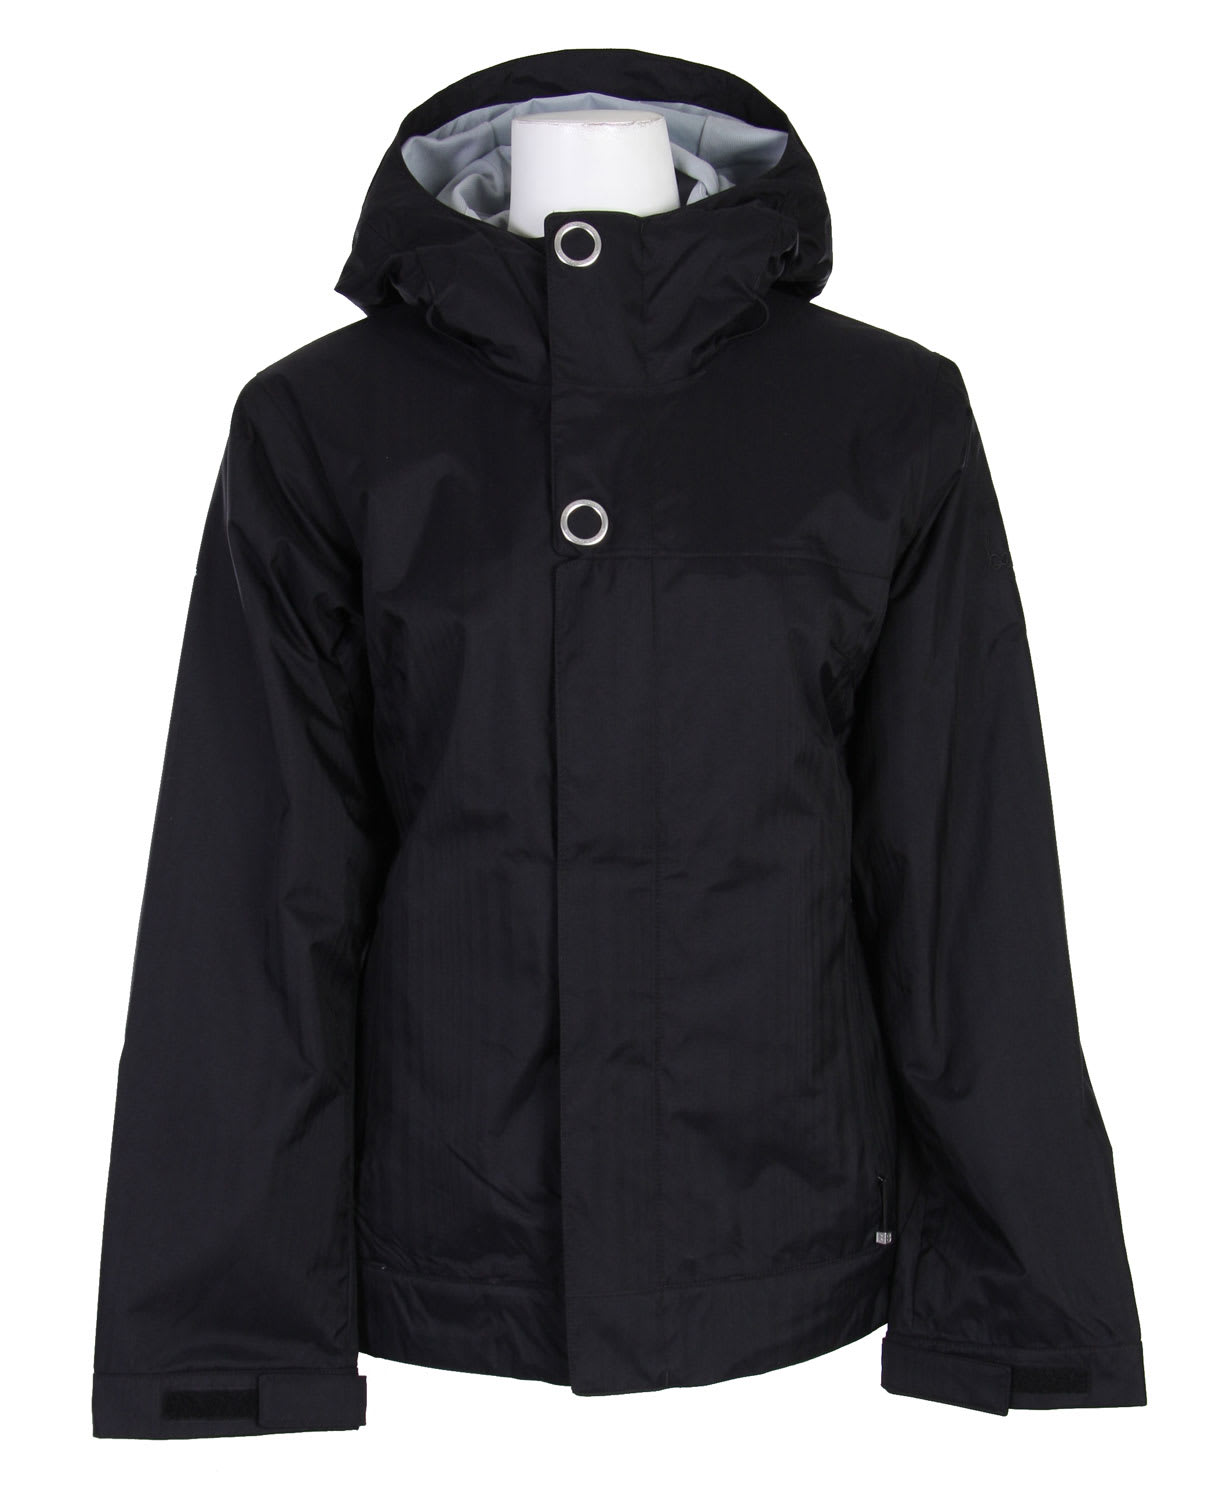 Shop for Bonfire Rainier Snowboard Jacket Black - Women's